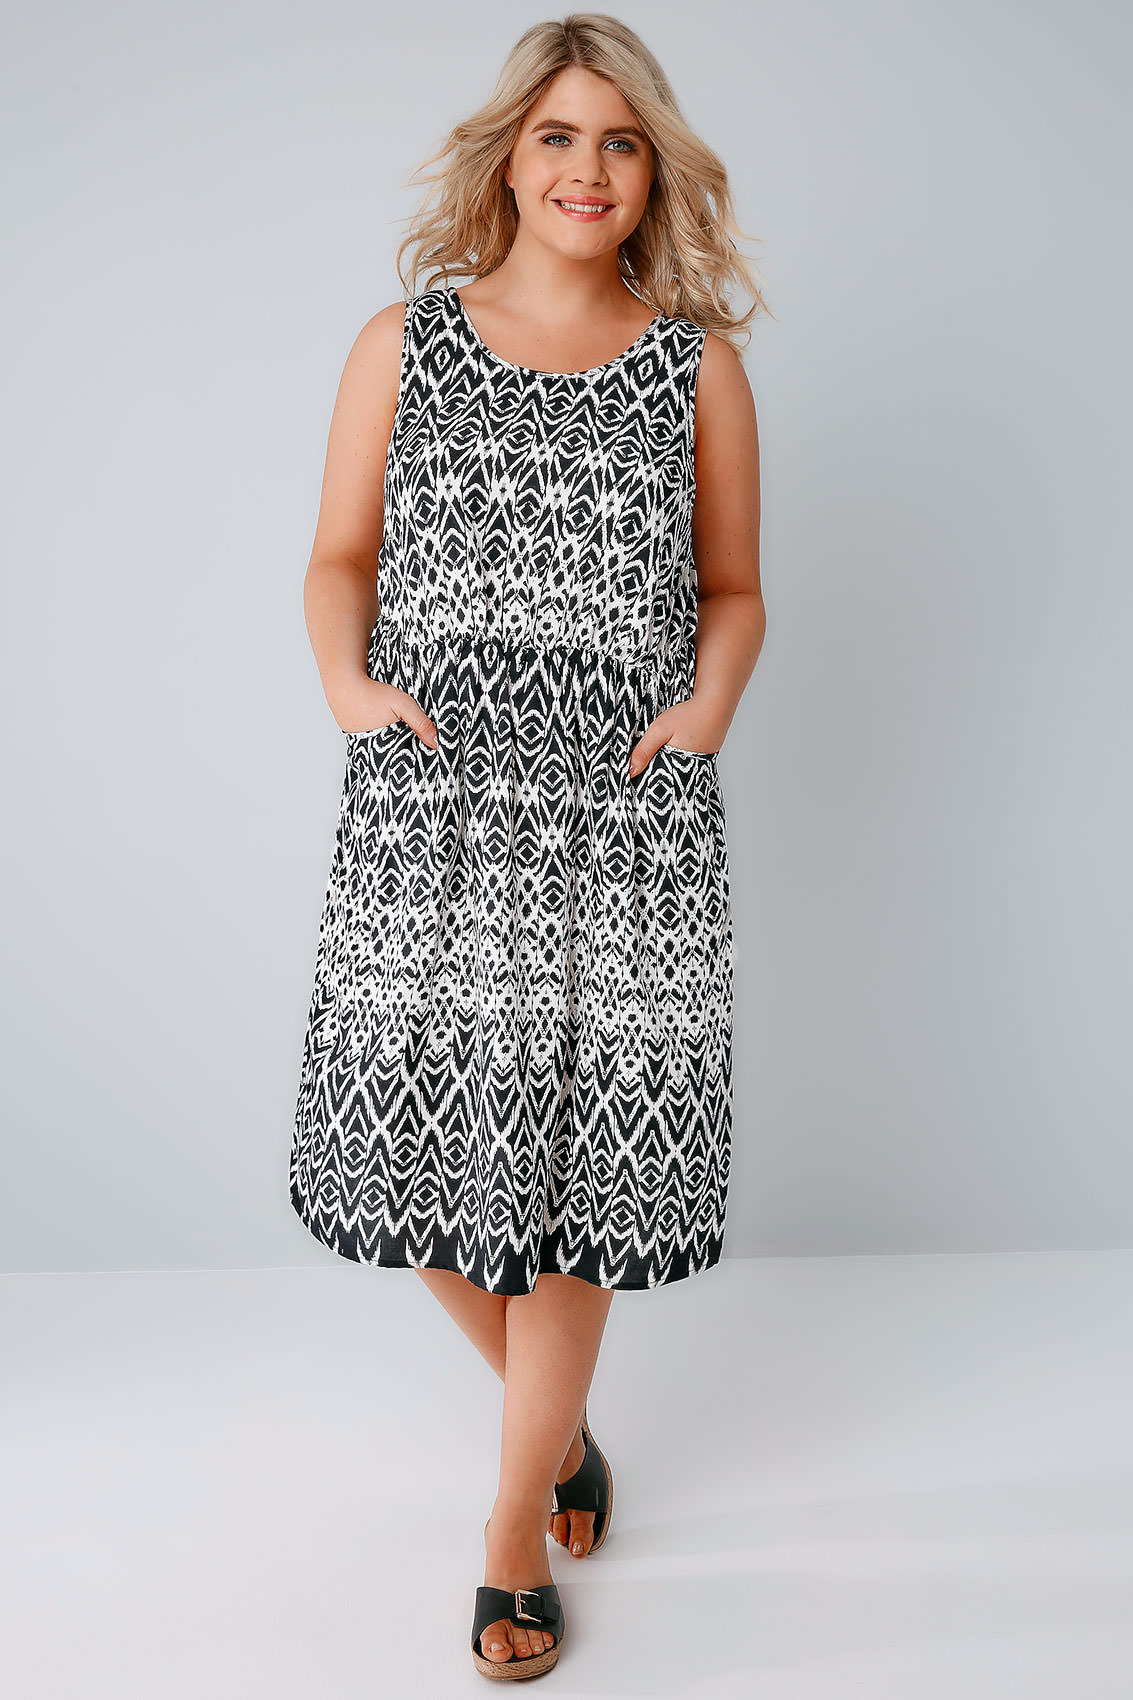 Find great deals on eBay for black aztec dress. Shop with confidence.